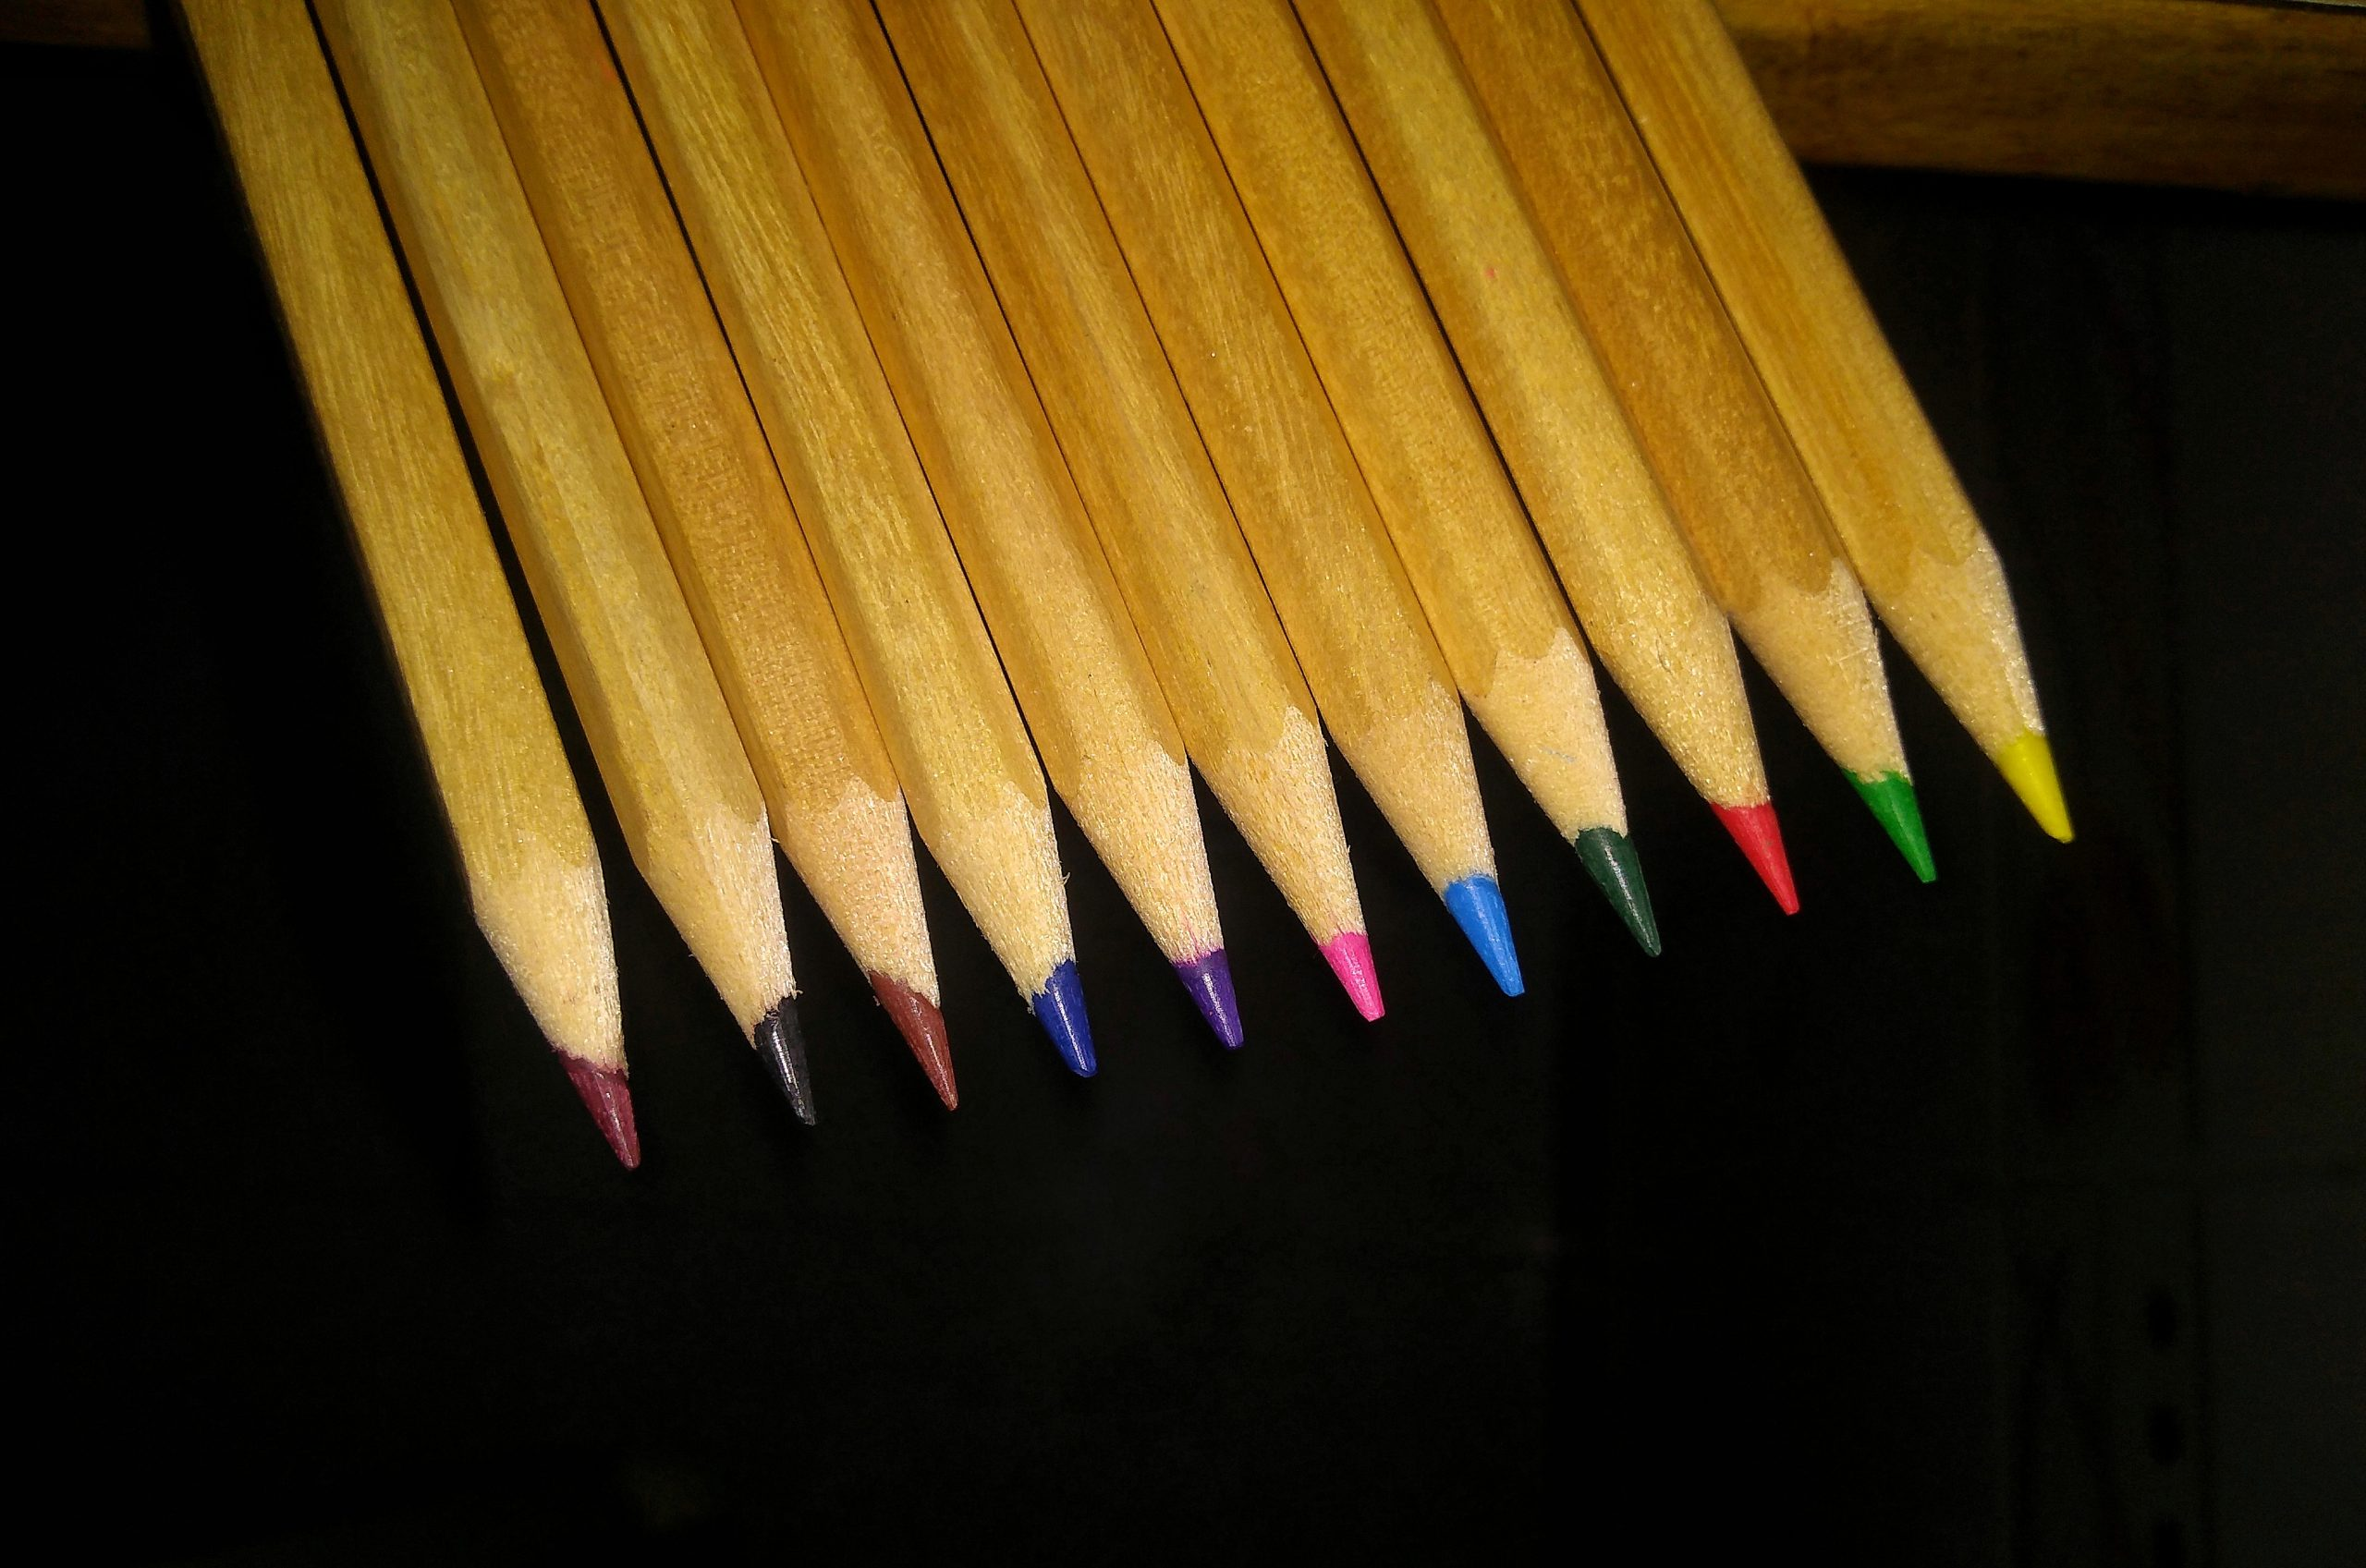 Colored Pencils on Dark Background